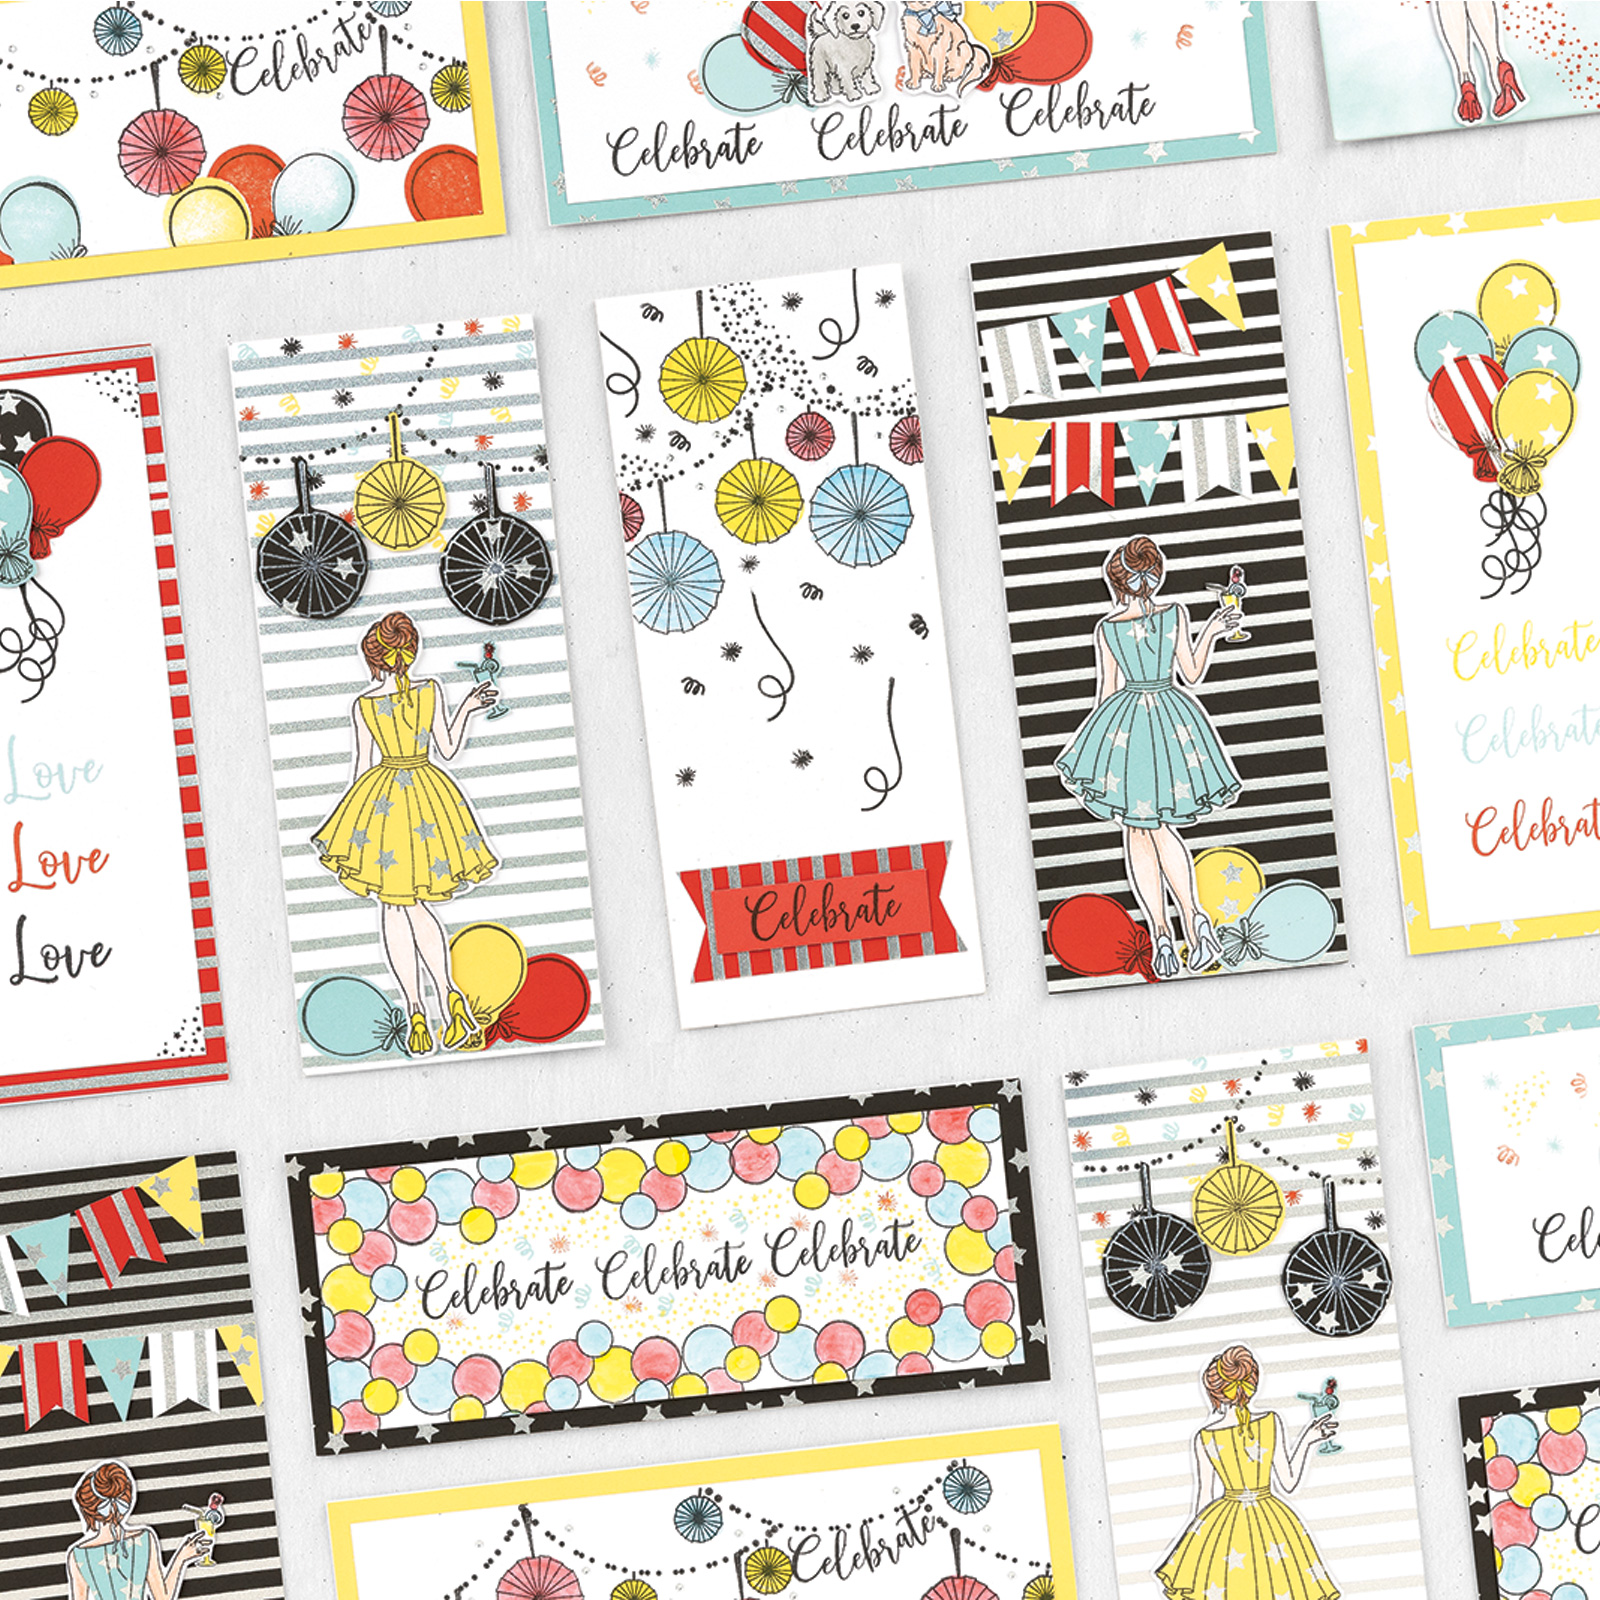 CTMH Return to the Happiest Place Cardmaking Kit